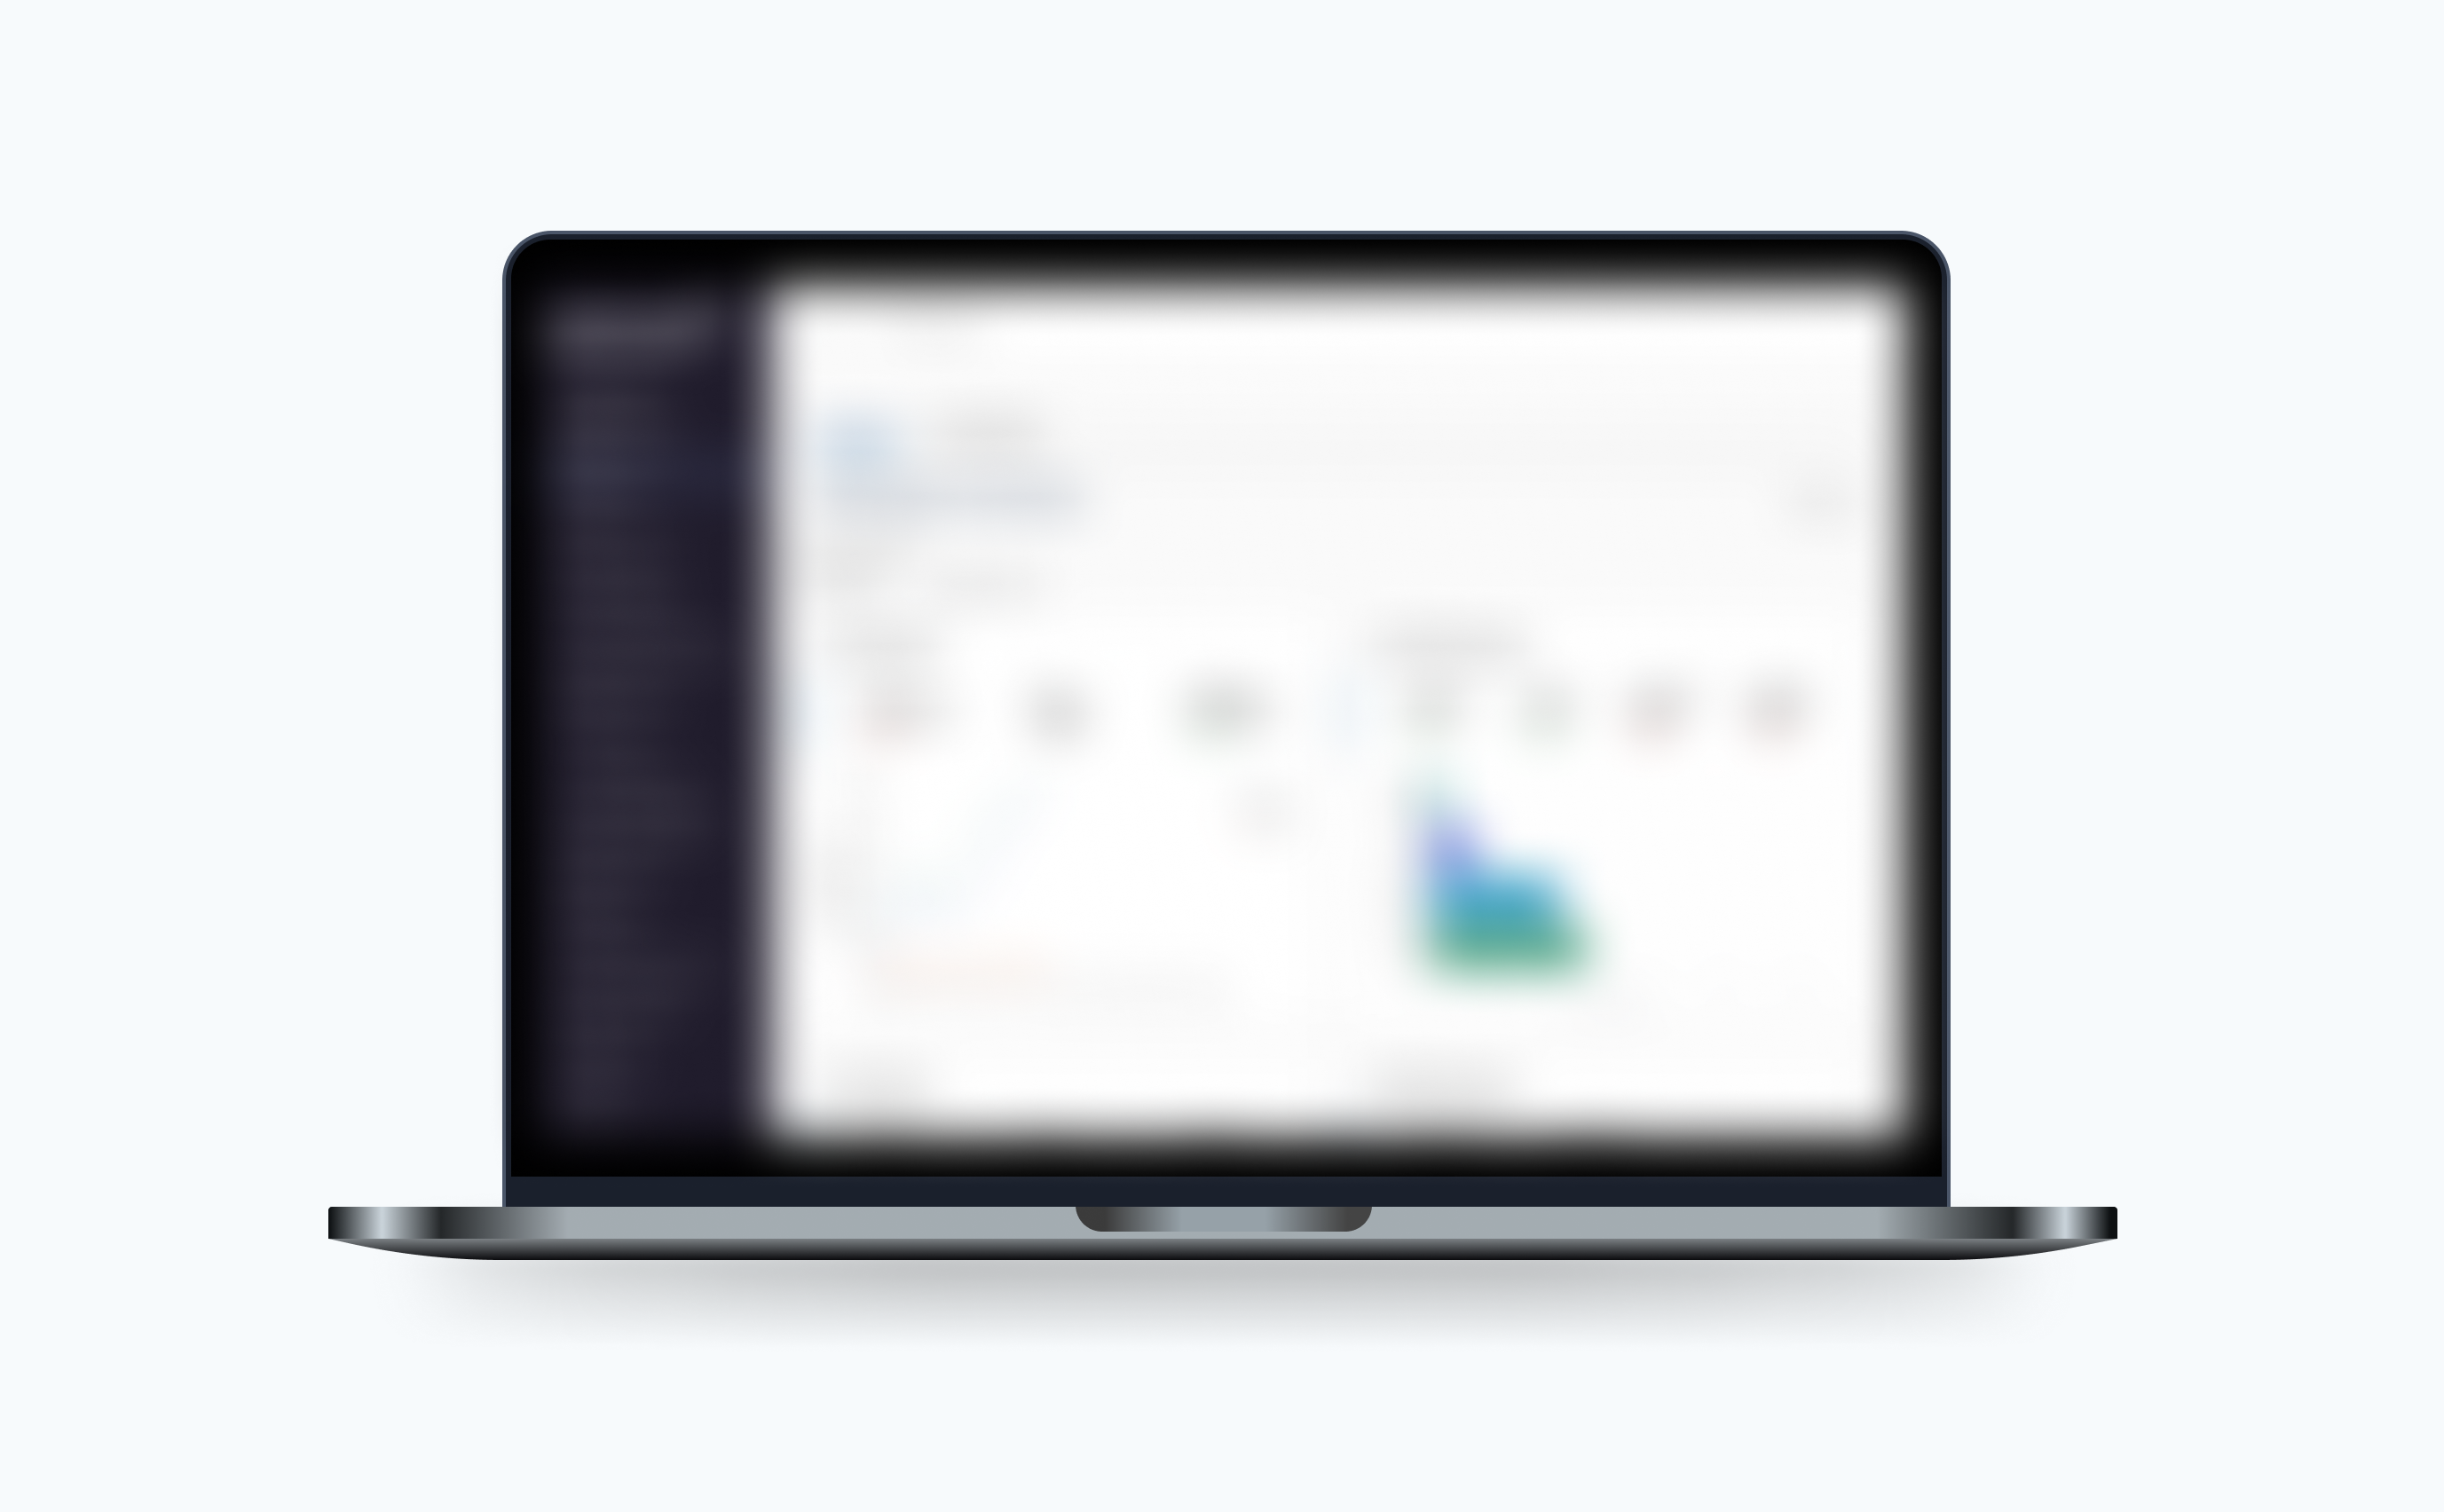 Blurred mockup of the data dashboard for govDelivery.